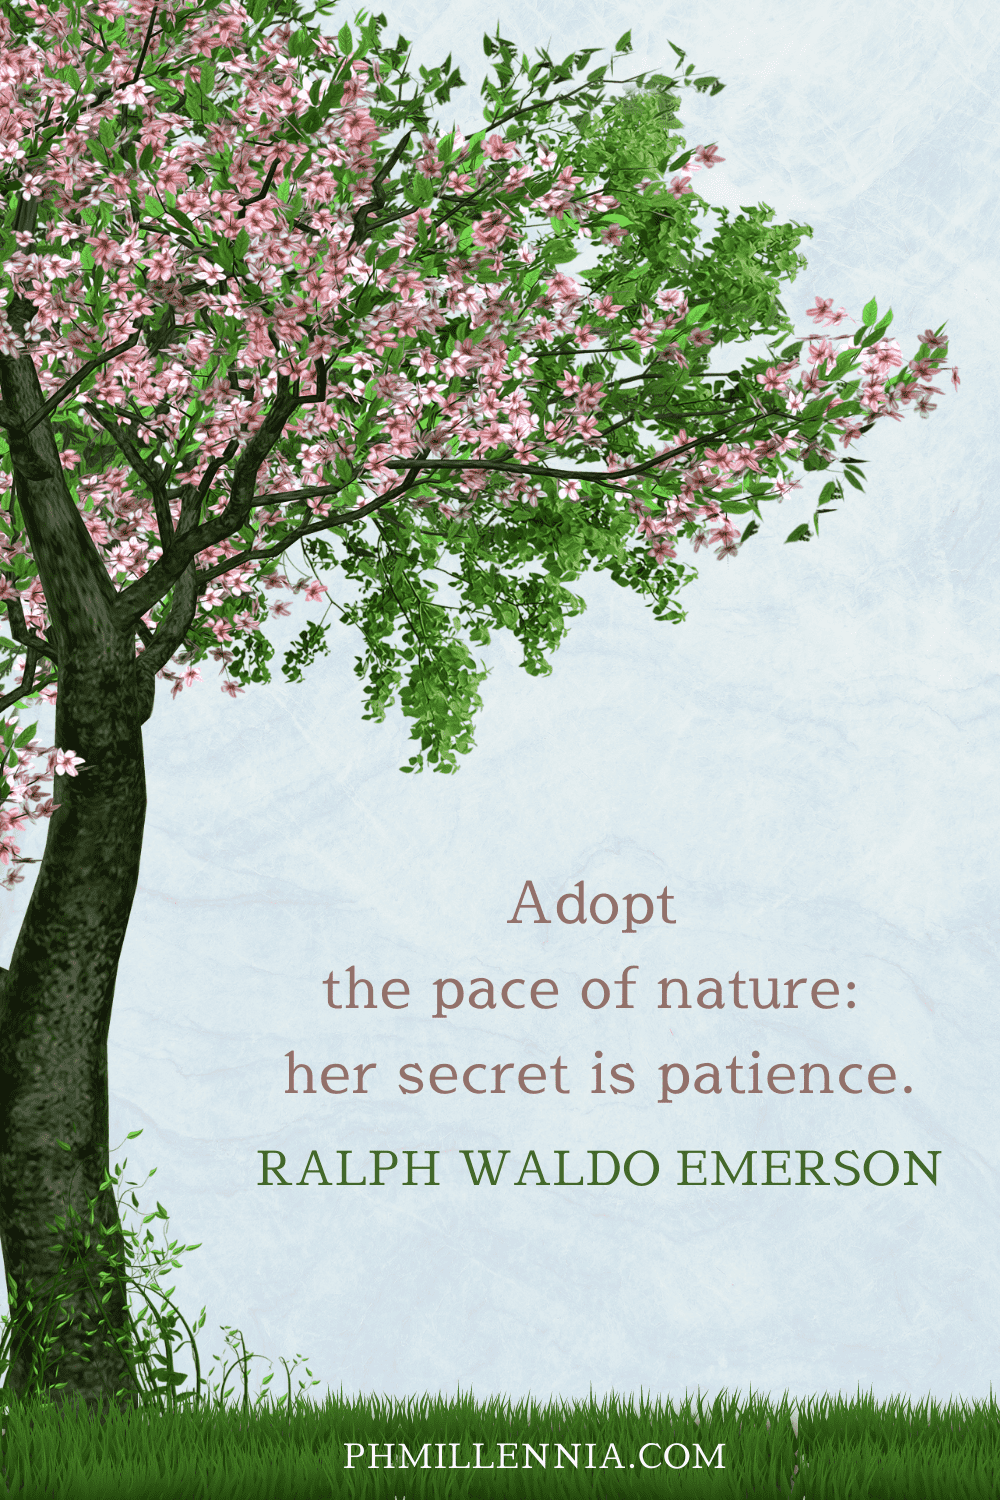 A Pinterest Pin for the article '199 Quotes on Nature to Inspire a Lifelong Love for the Great Outdoors' on phmillennia